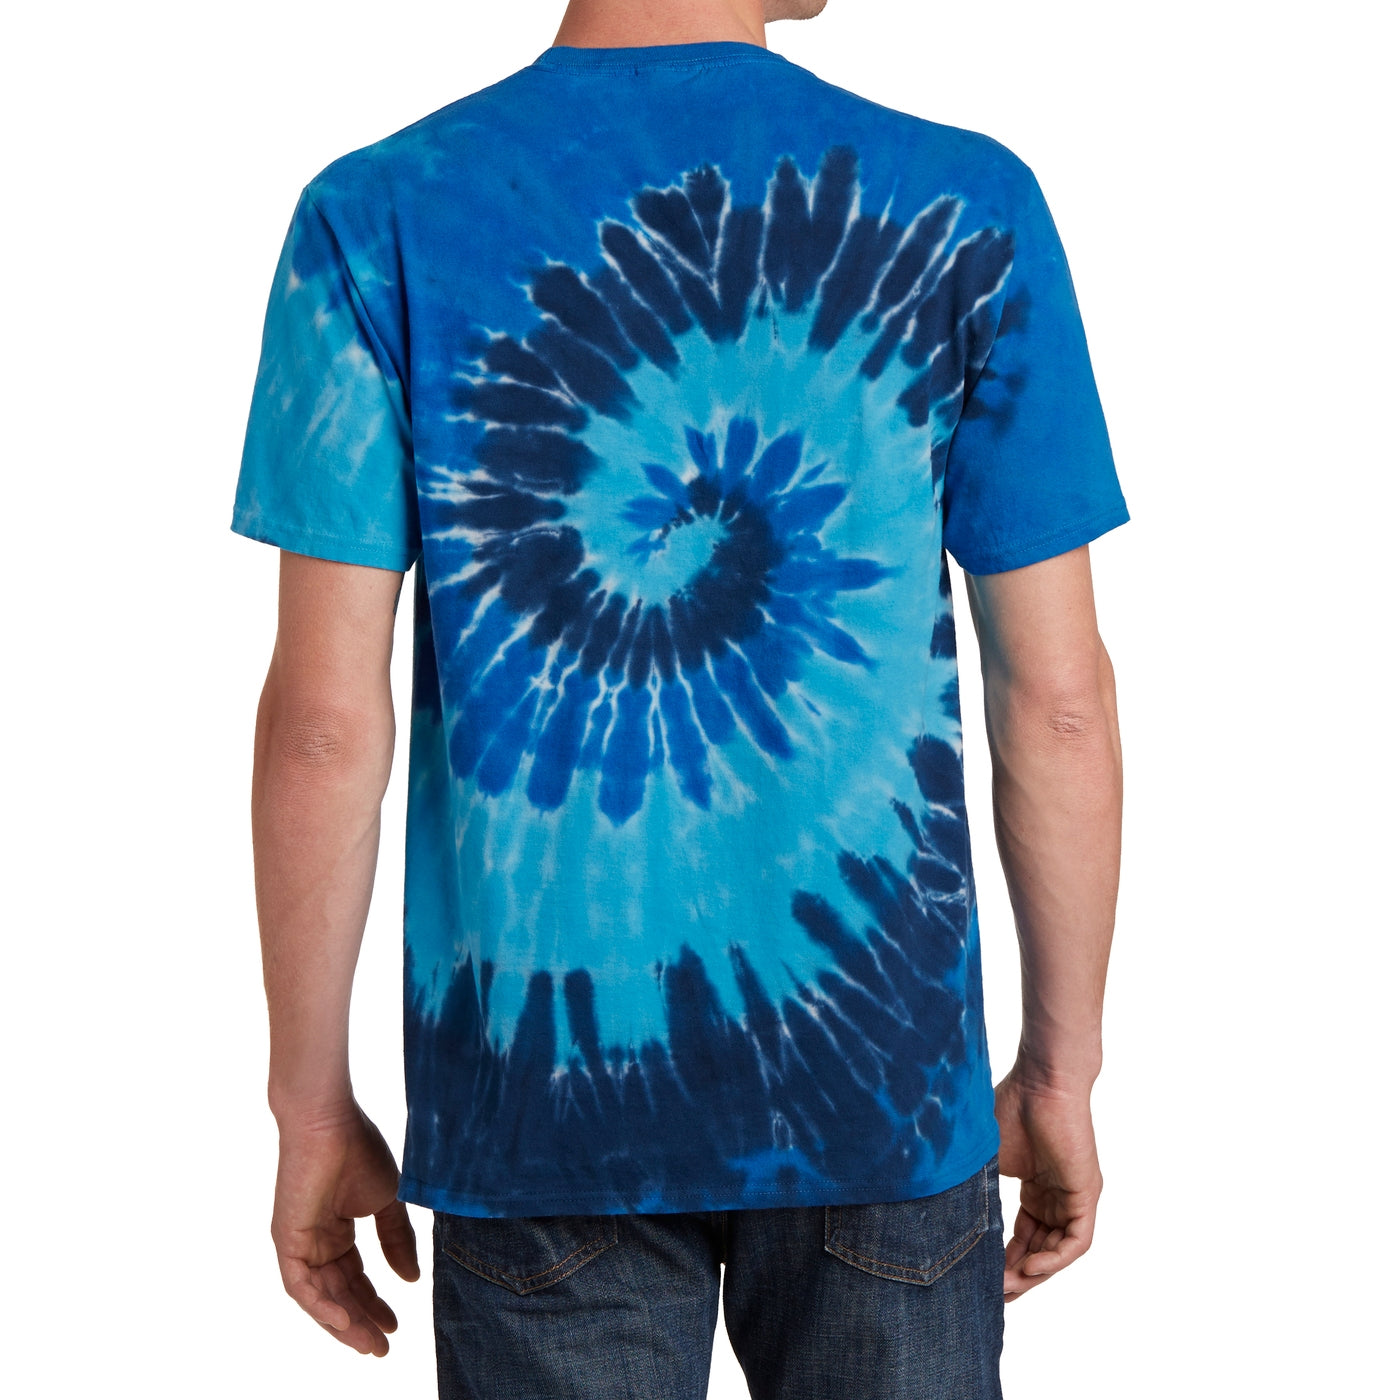 Men's Tie-Dye Tee - Ocean Rainbow - Back